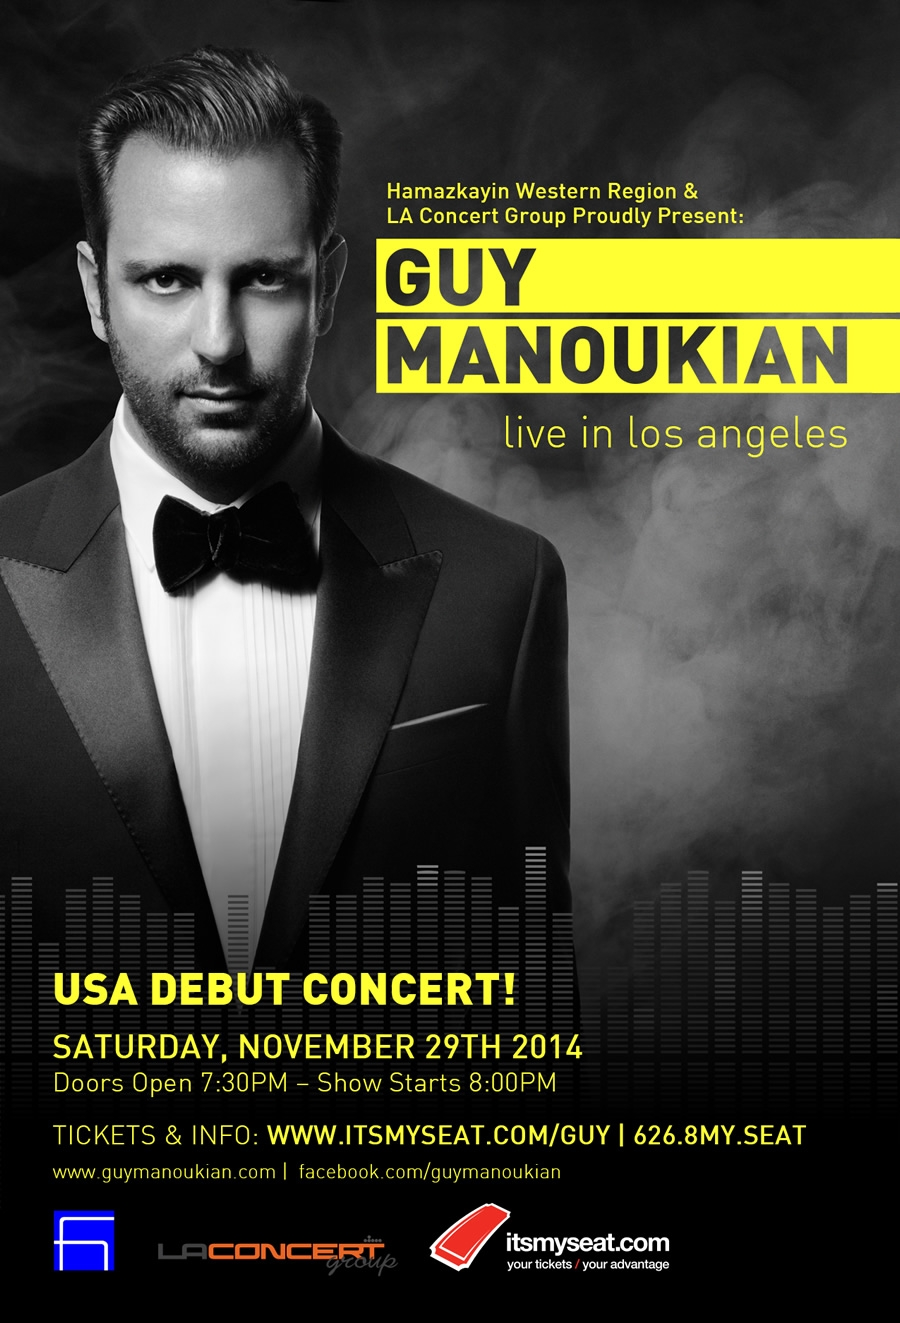 Guy Manoukian Live In Los Angeles